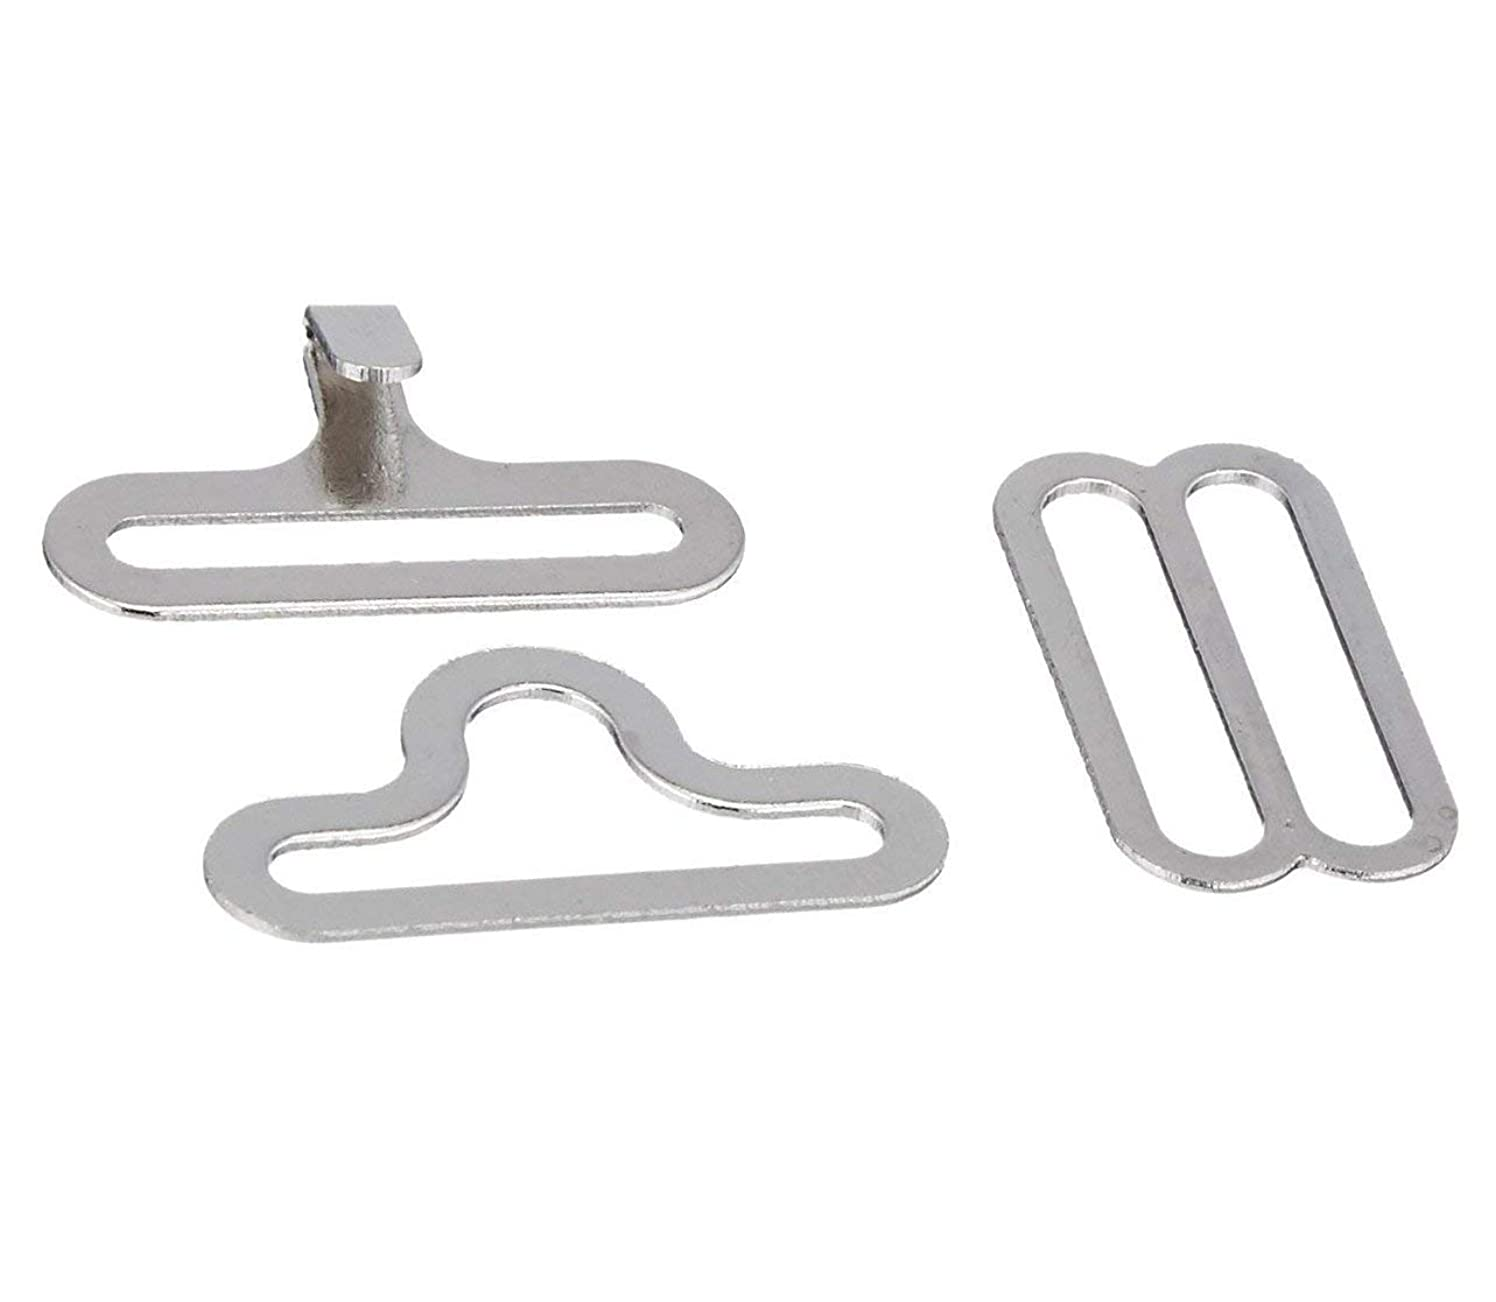 50 Set Bow Tie Hardware Clips Fasteners to Make Adjustable Straps on Bow Ties/Neckties Tie Accessories (Silver)